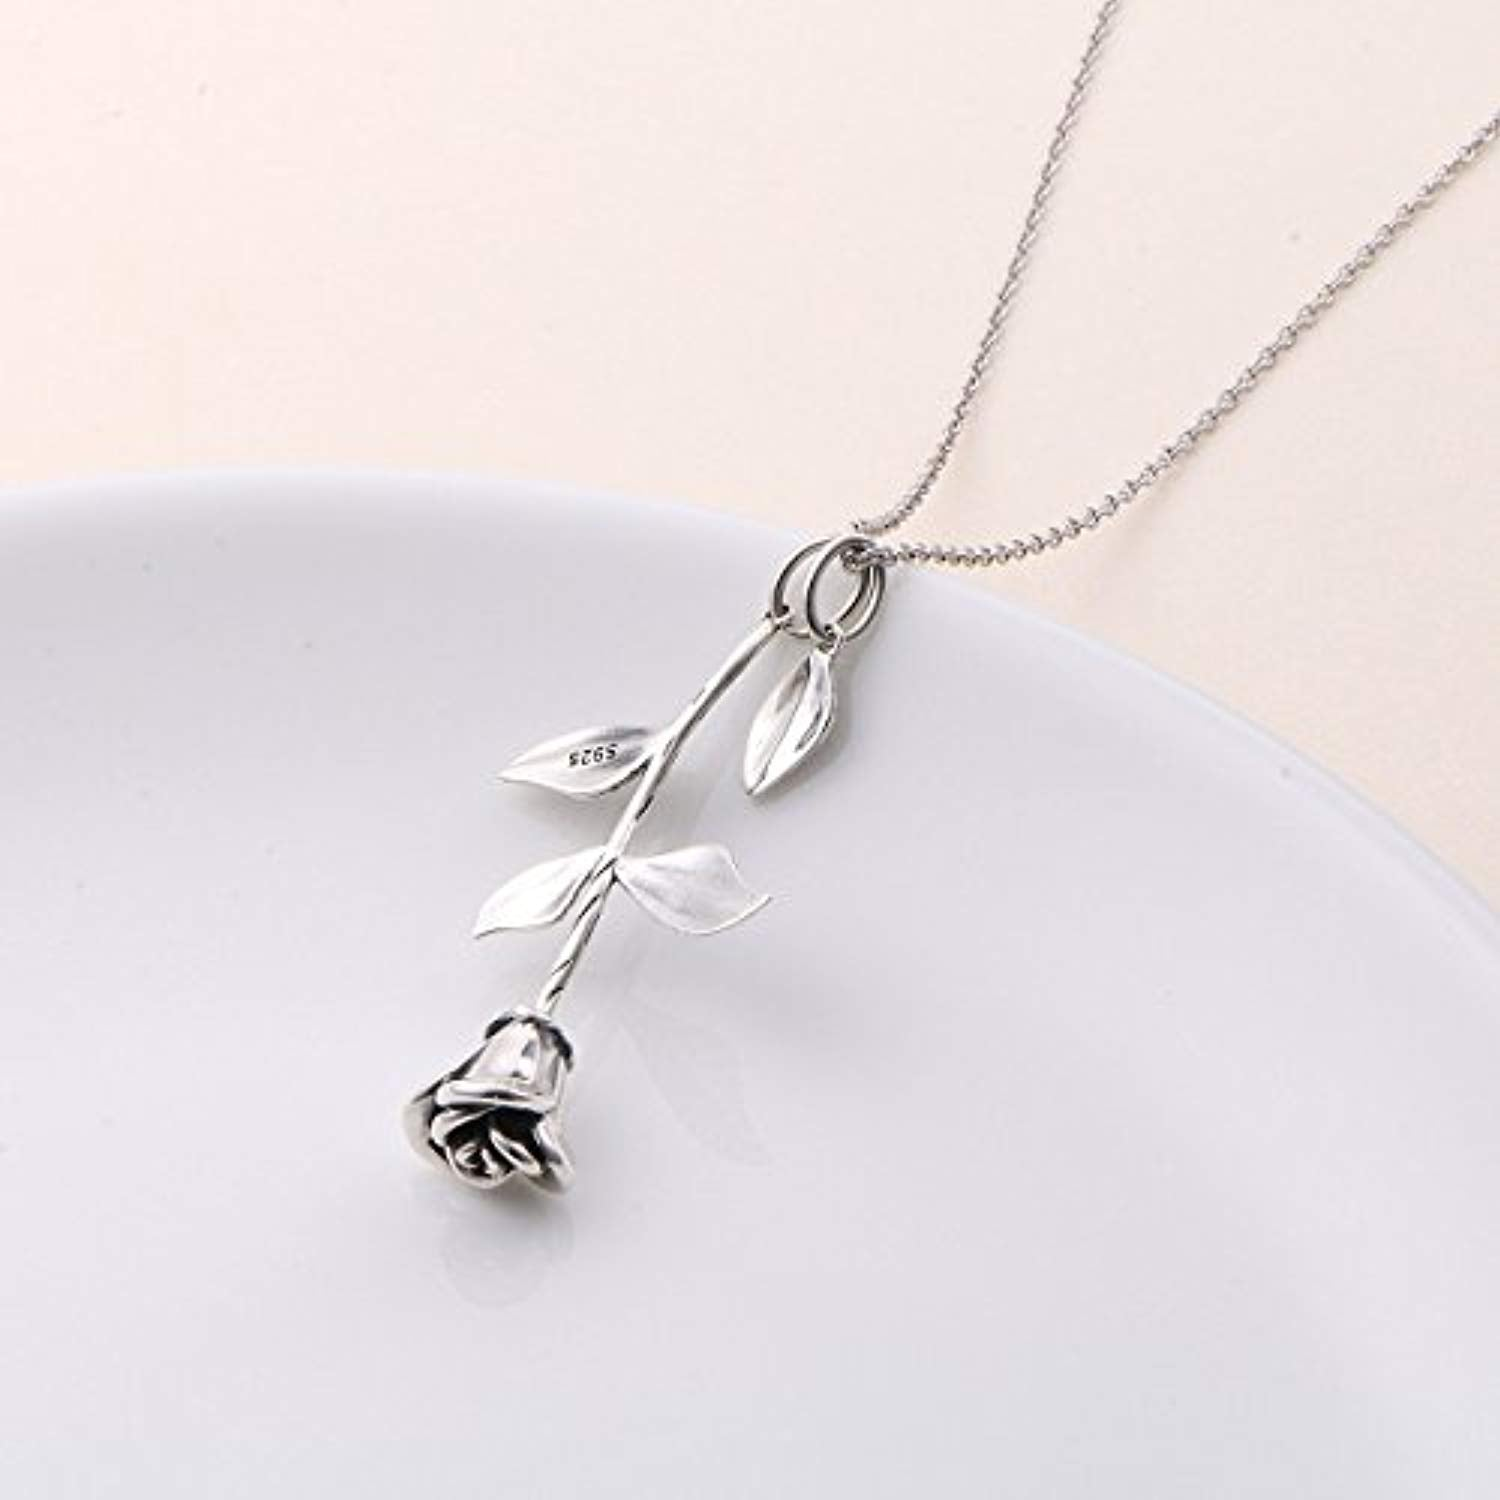 S925 Oxidized-plated Sterling Silver Rose Flower Pendant Necklace Jewelry for Women